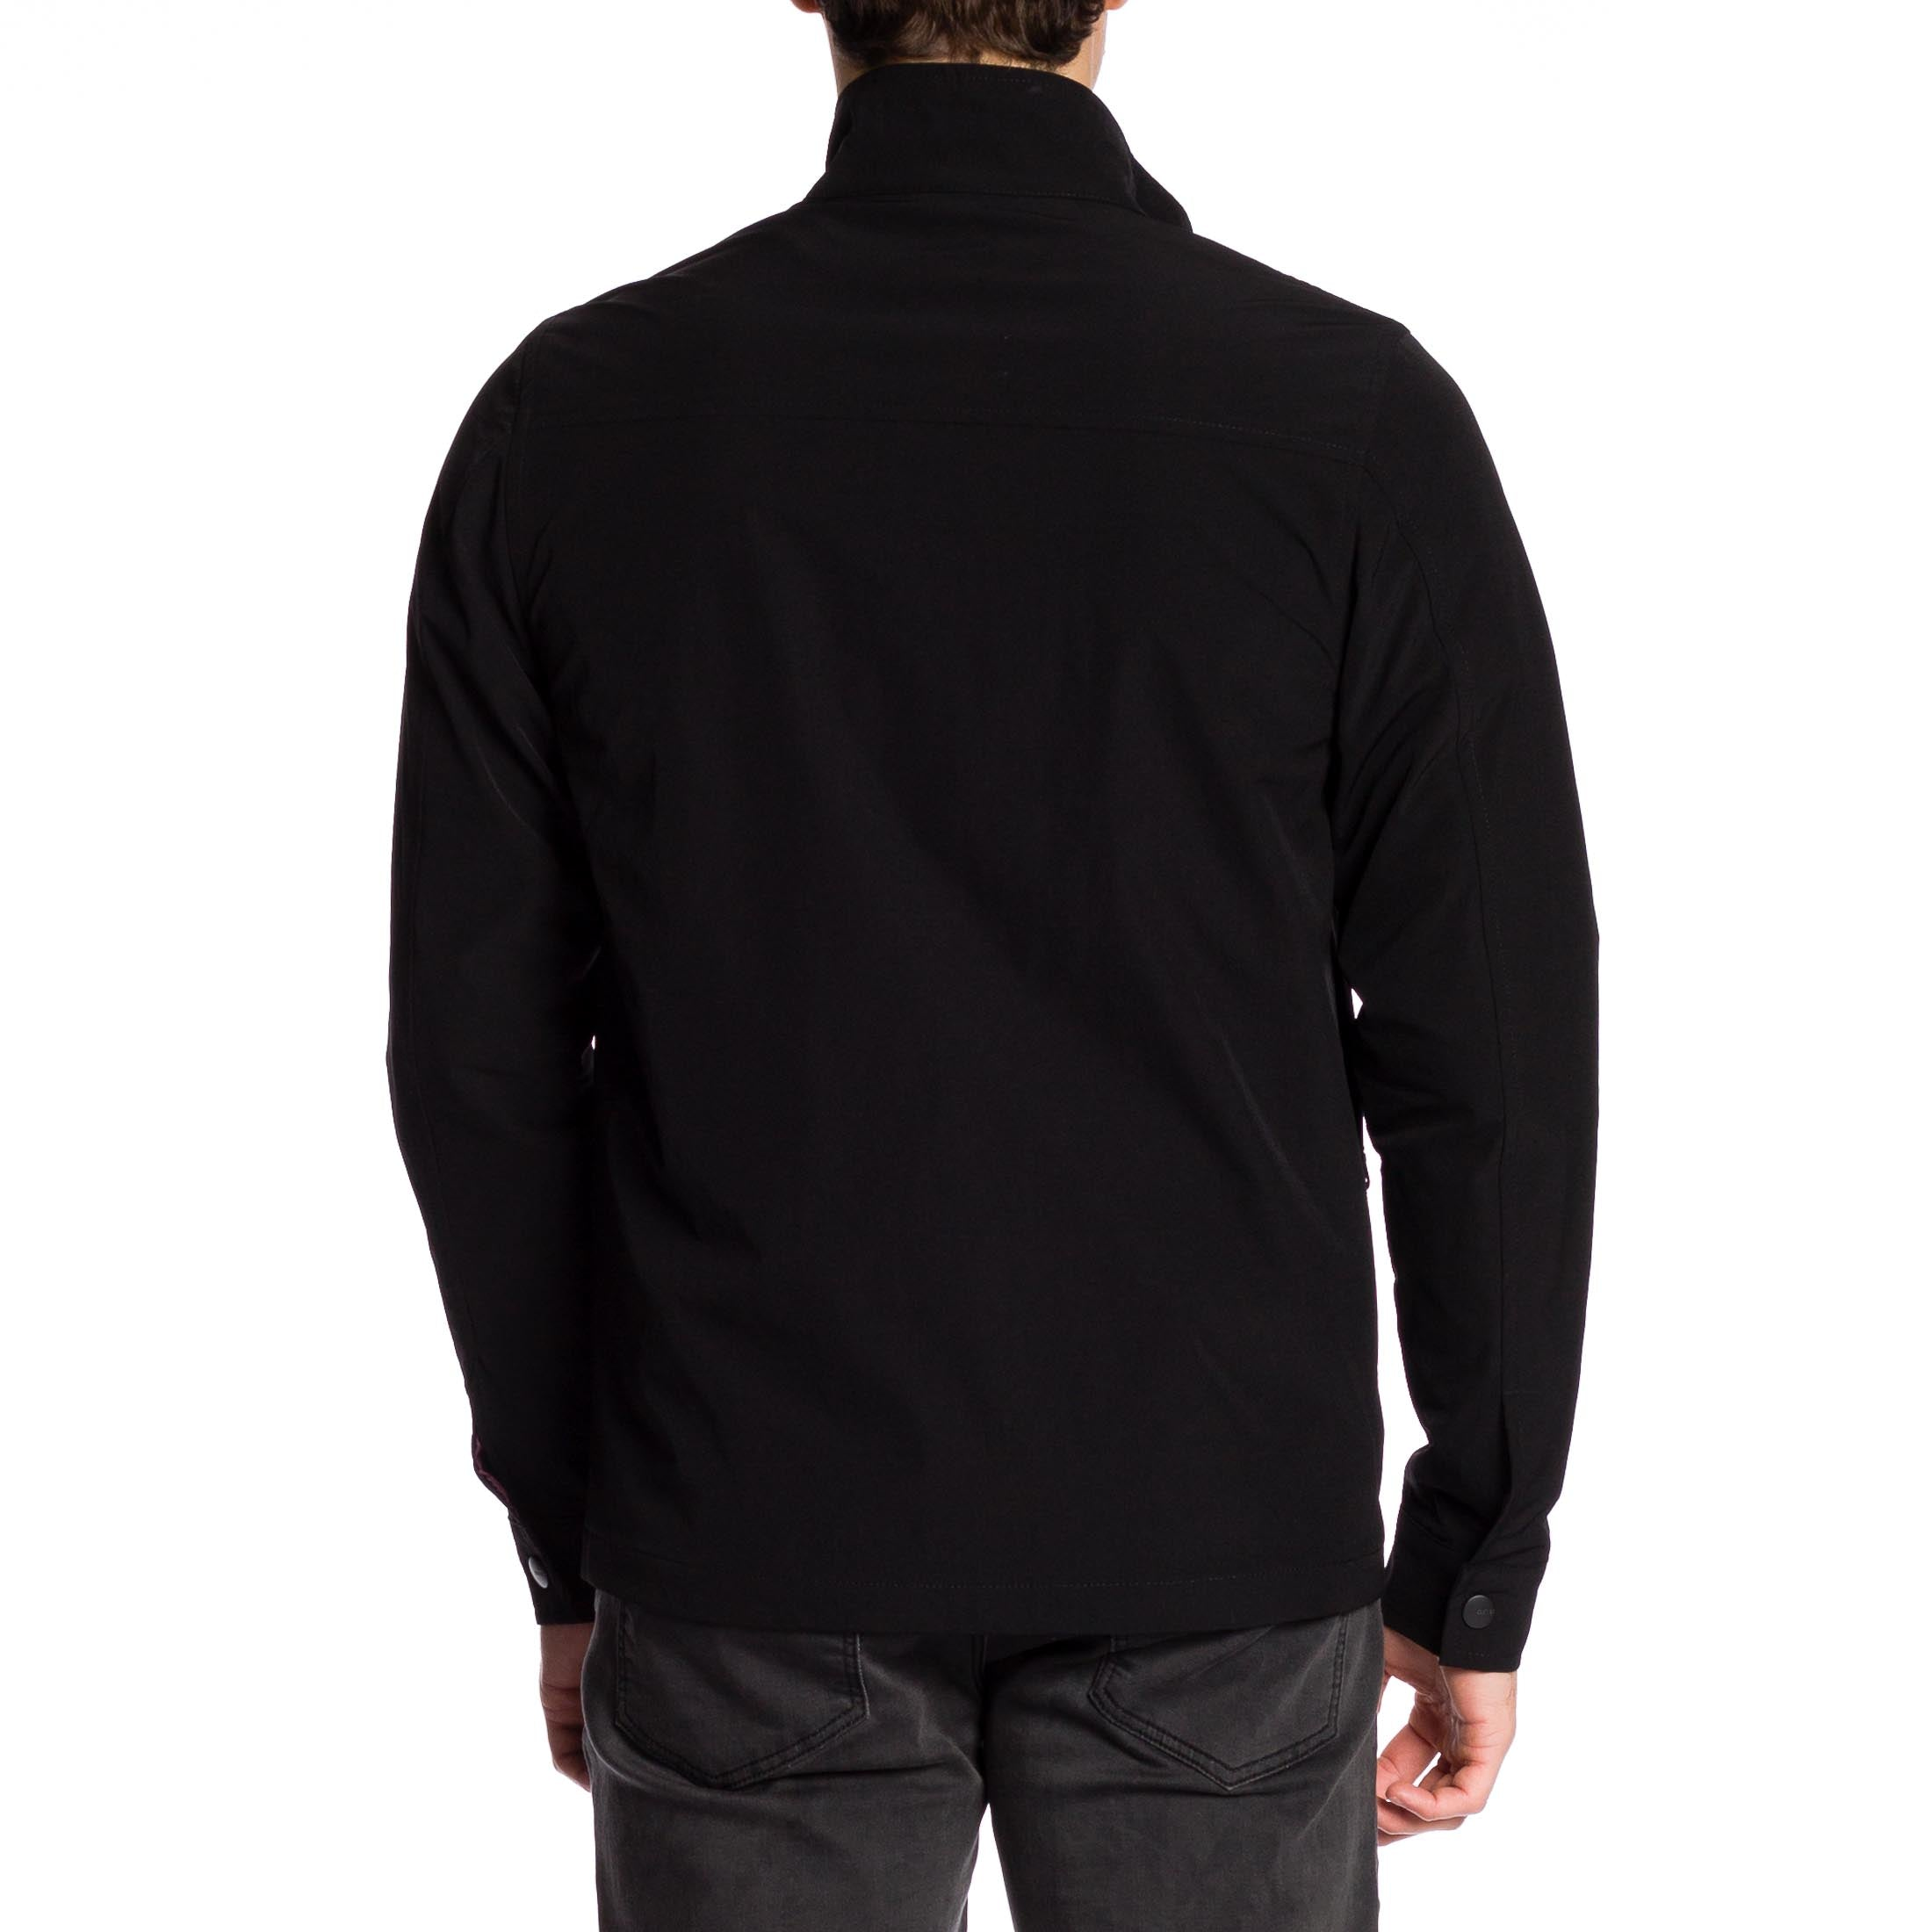 Suburban Jacket - Black - Ezekiel Clothing